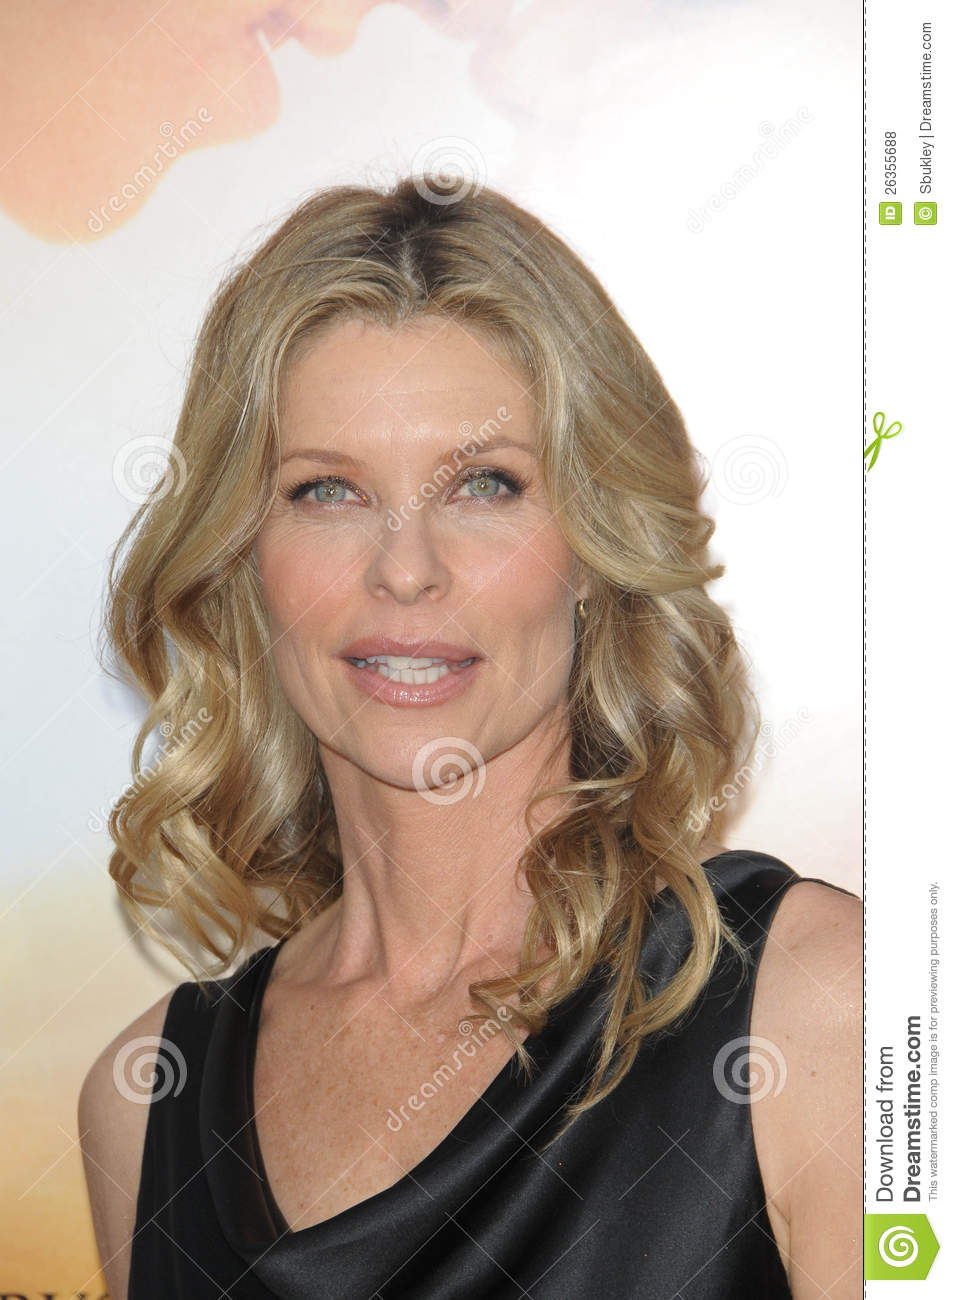 images Kate Vernon